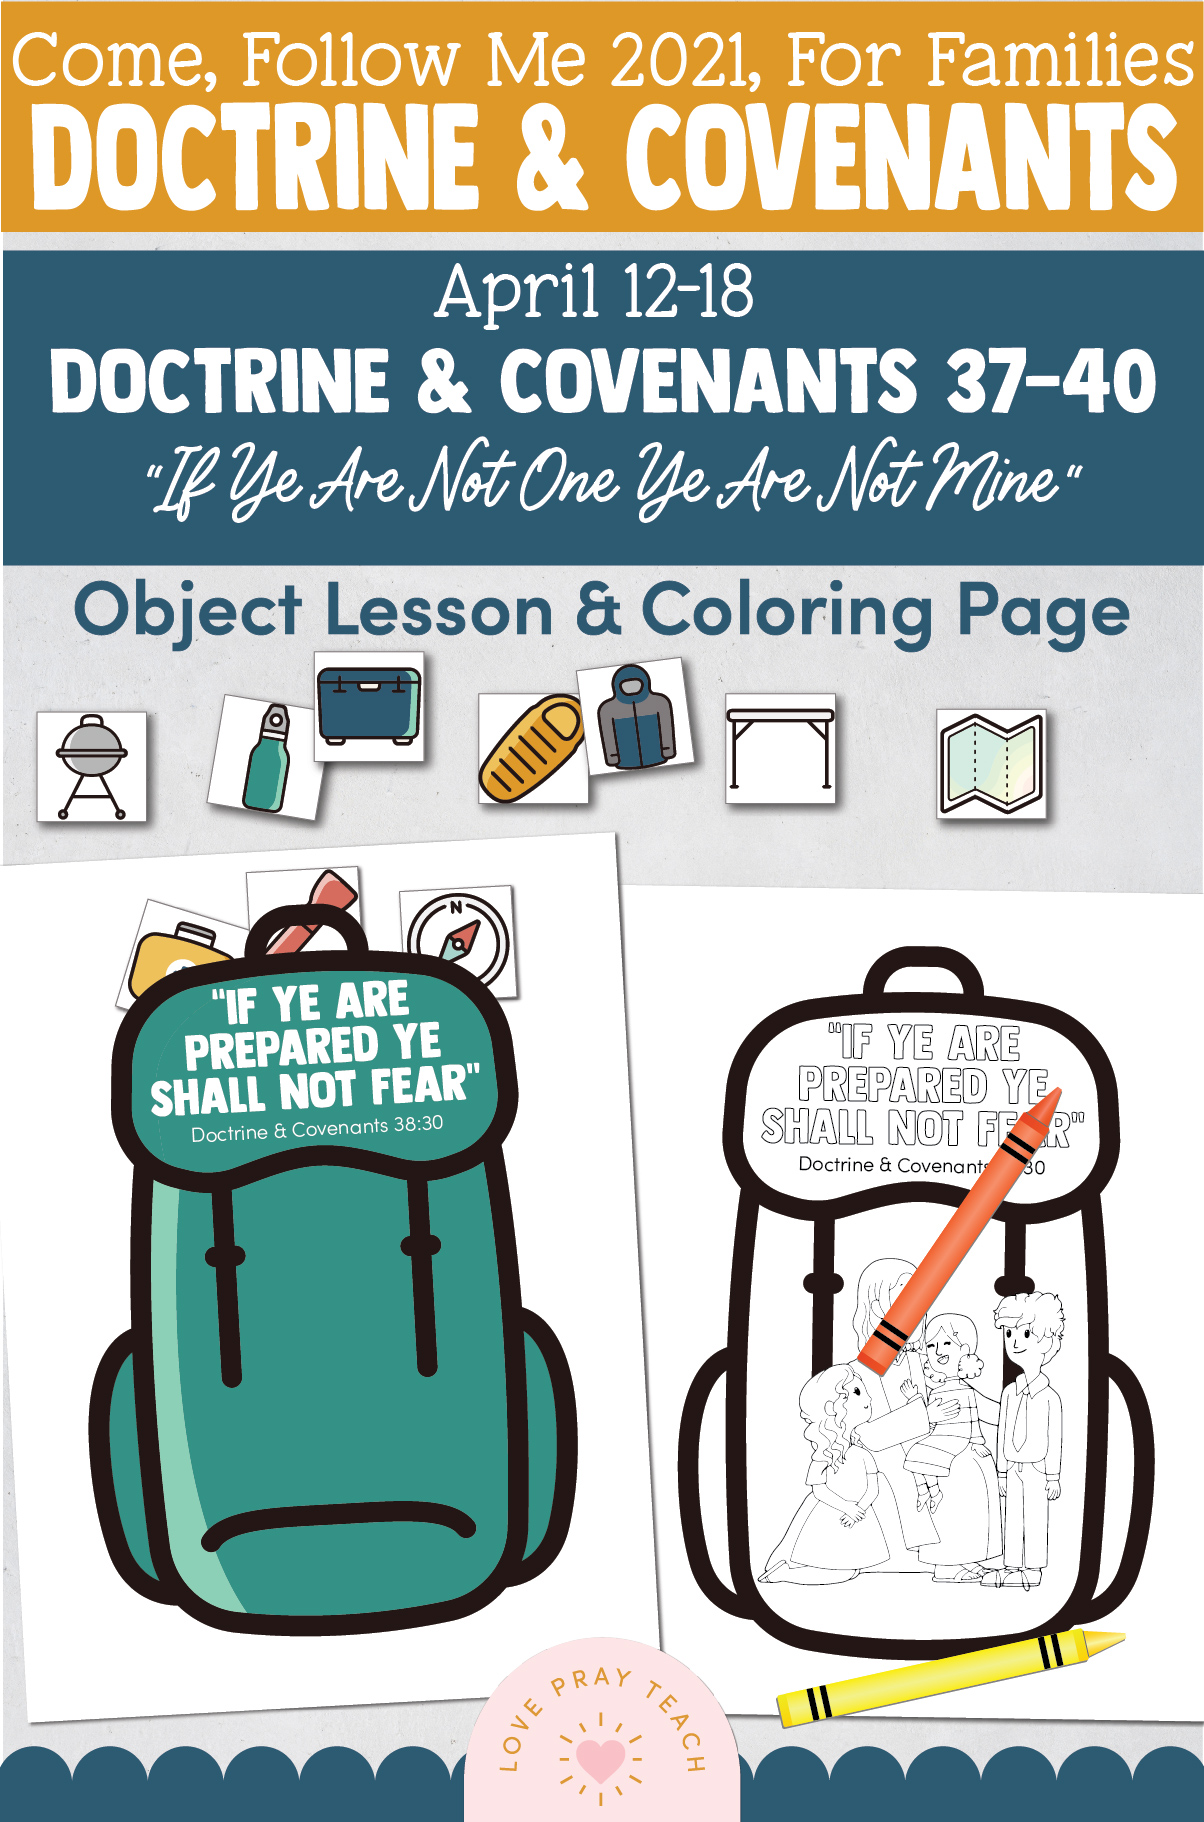 """Come, Follow Me—For Individuals and Families: Doctrine And Covenants 2021, April Week 3 Doctrine and Covenants 37-40: April 12-18,""""If Ye Are Not One Ye Are Not Mine"""